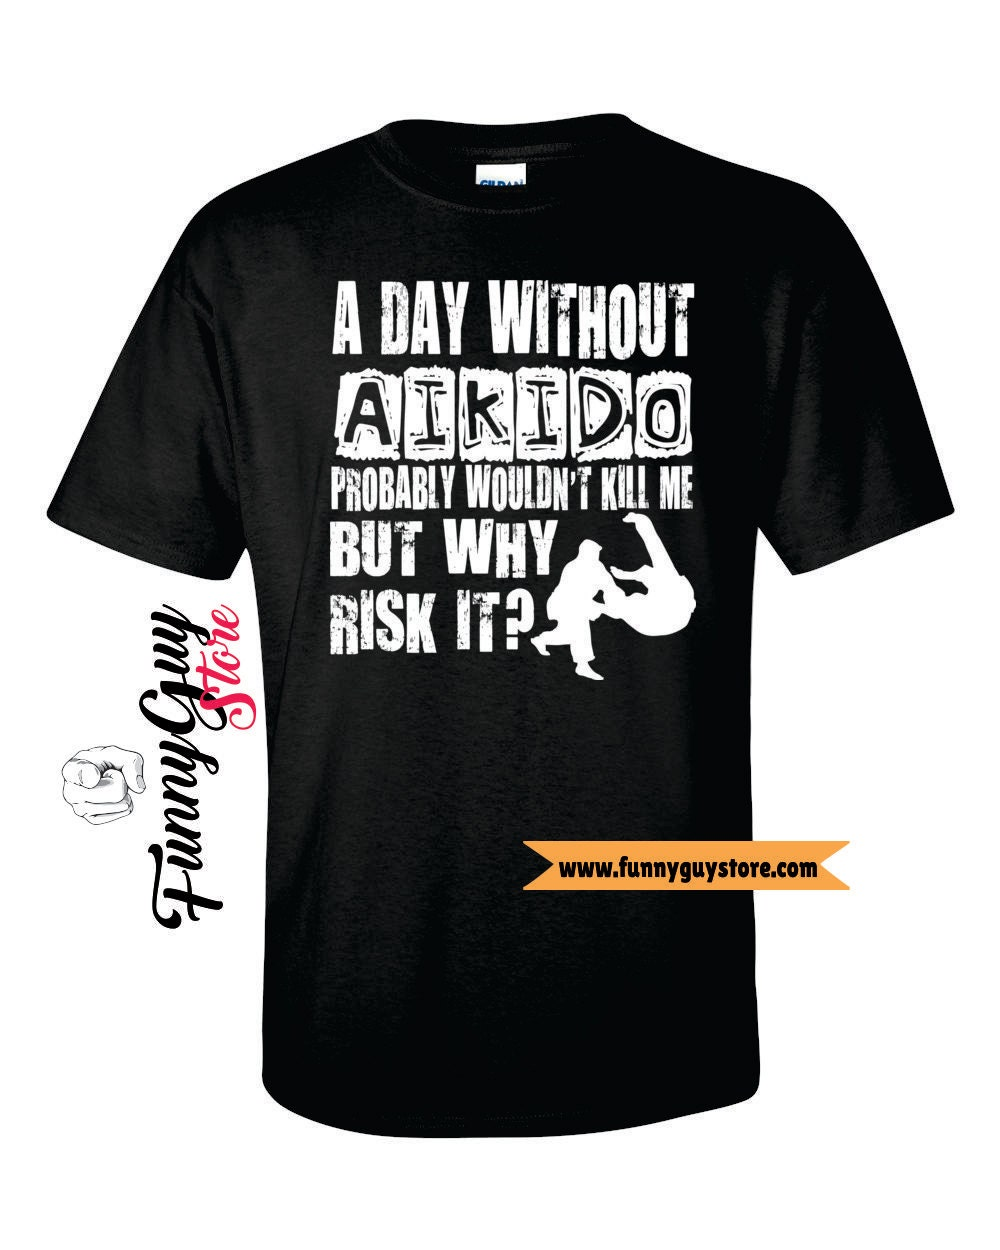 Amazoncom sayings tshirts Clothing Shoes amp Jewelry